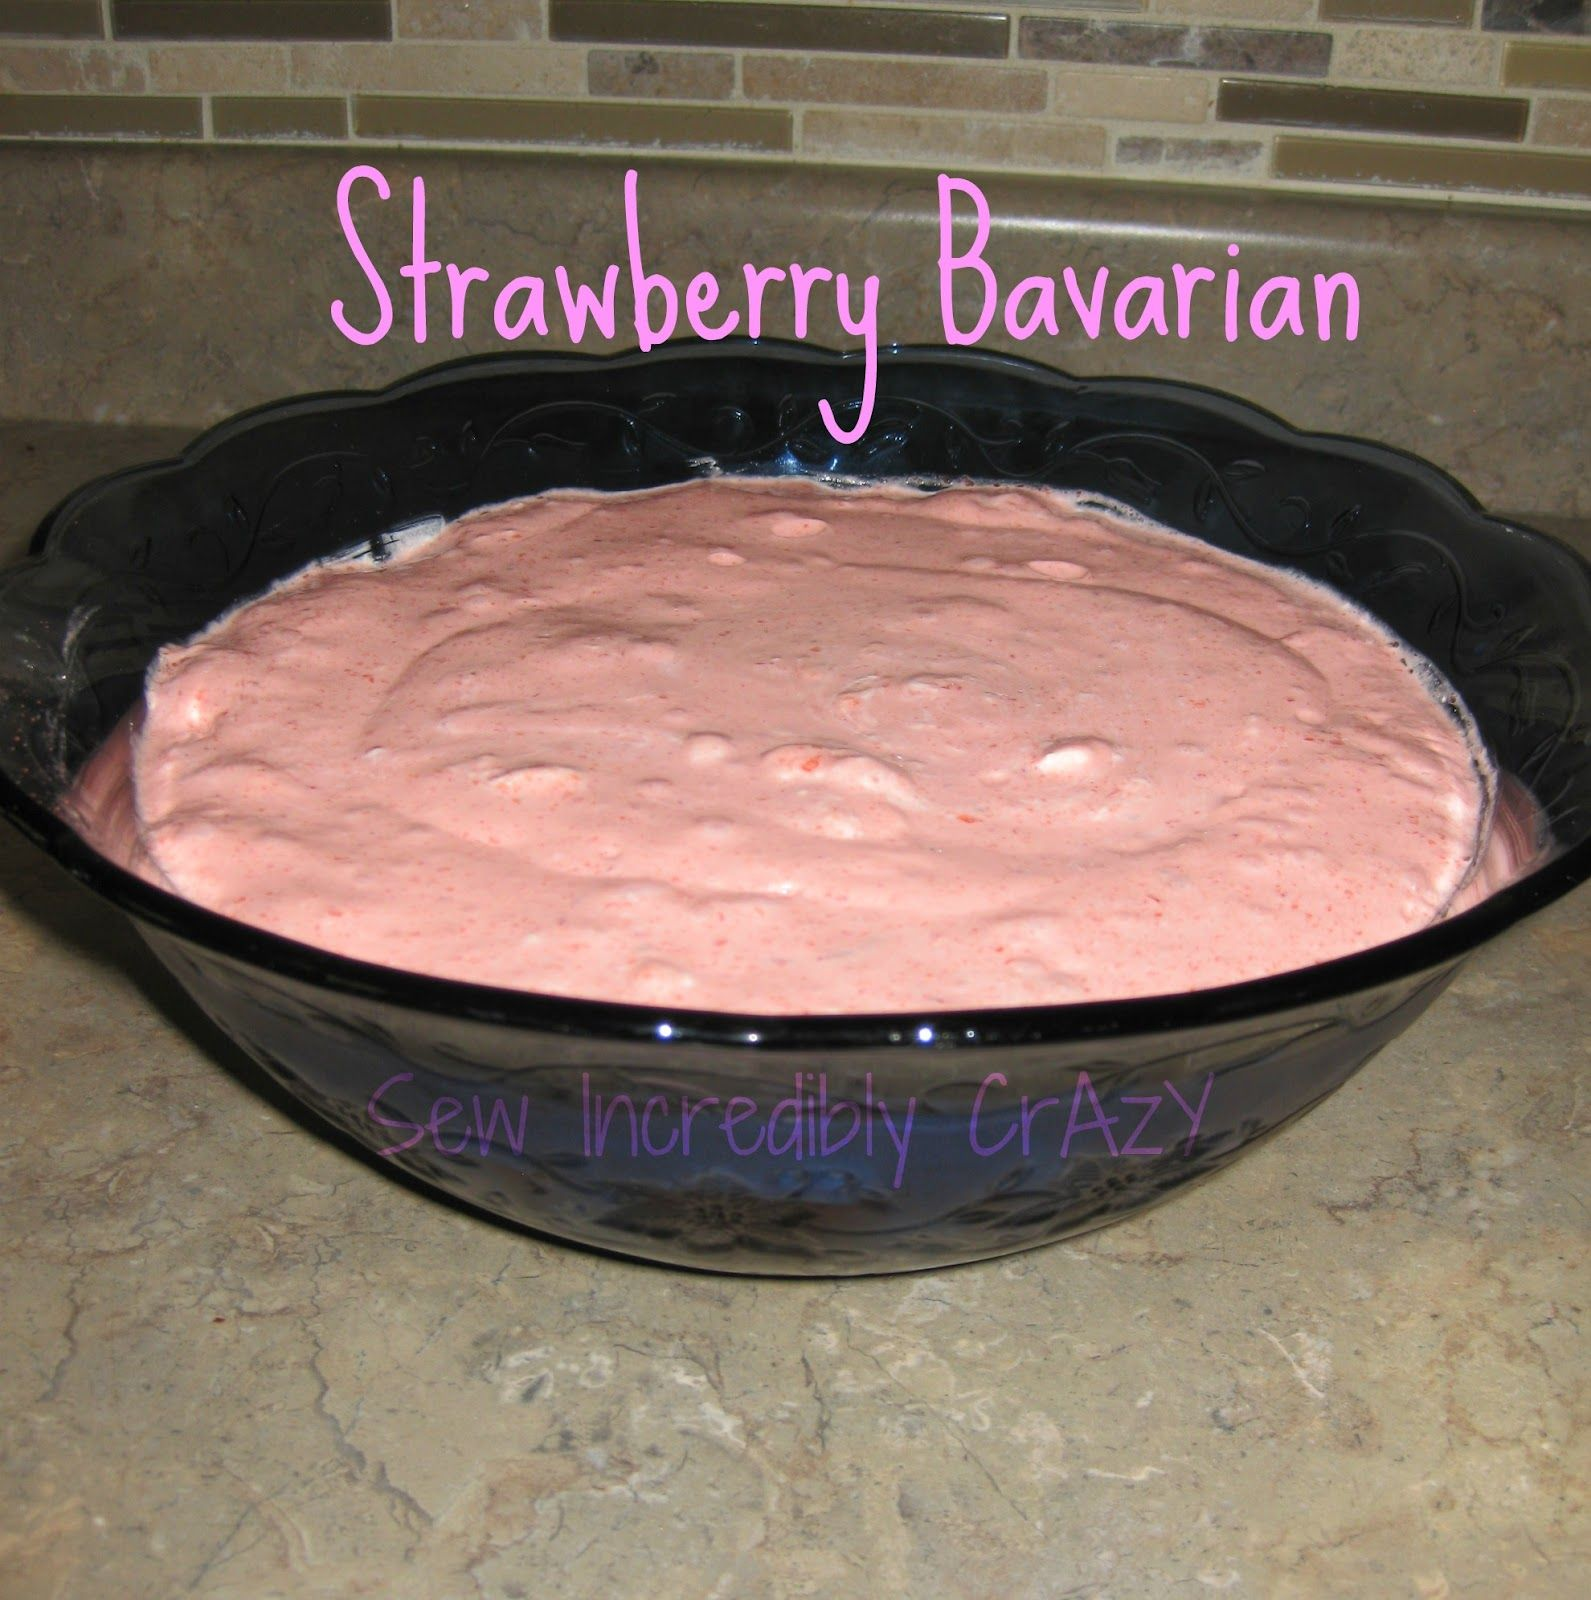 Sew Incredibly Crazy: Strawberry Bavarian